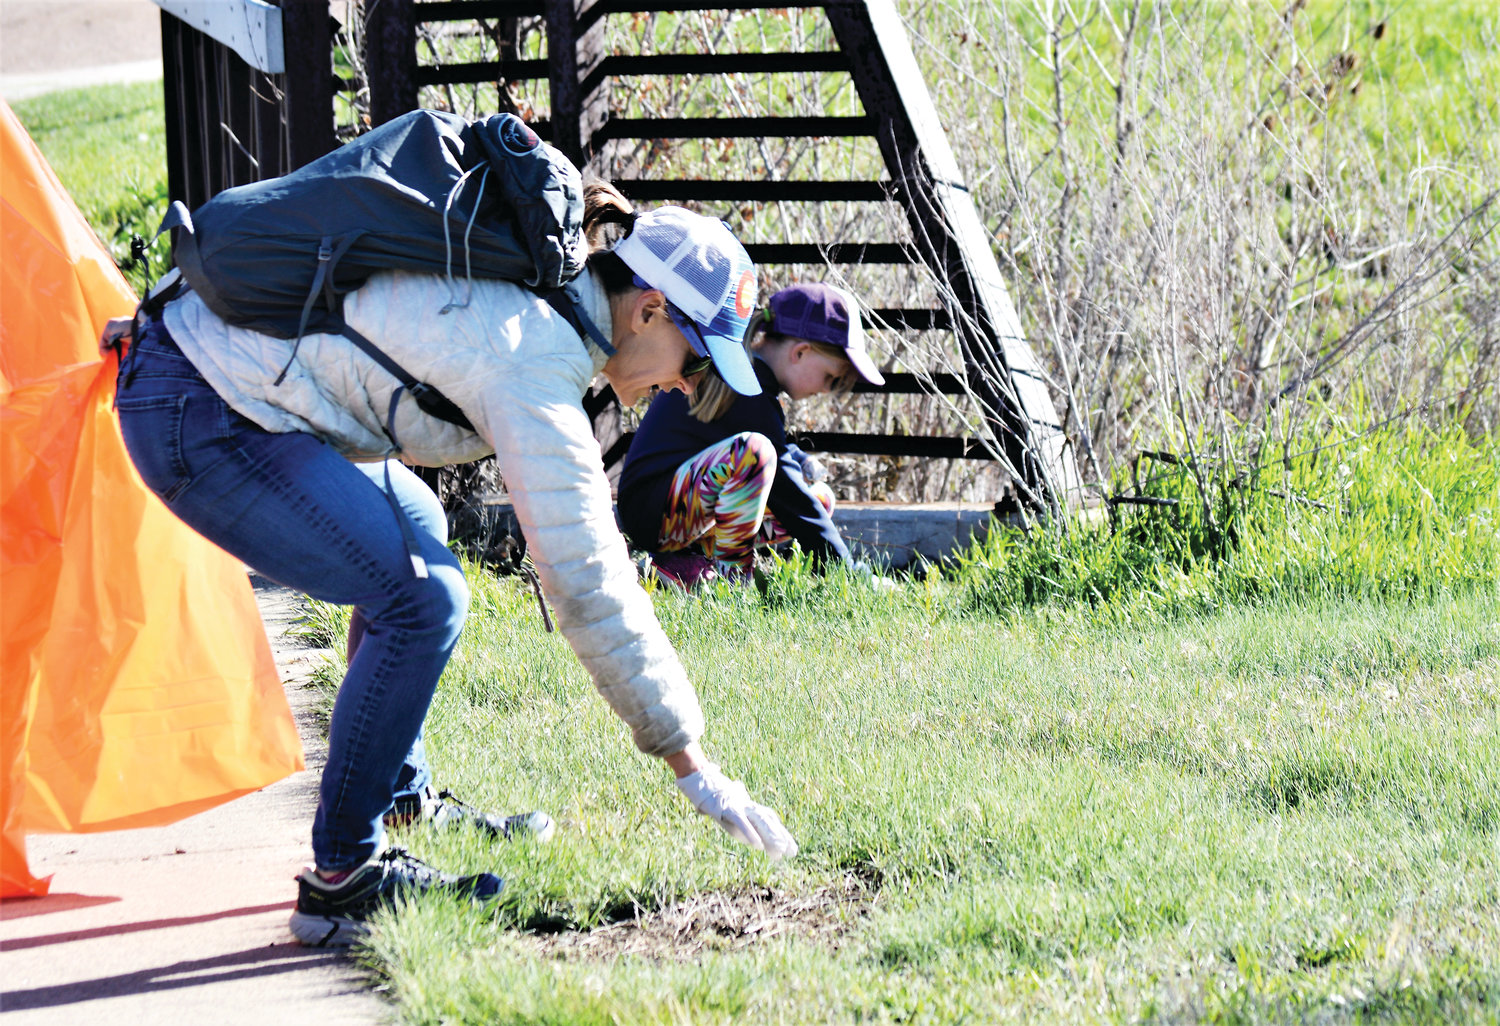 Aubrey Brenckle of Brighton, 7, and Marley Steele of Westminster both stoop to pick up trash along the Big Dry Creek Trail, part of the city of Westminster's Community Pride Day May 11.